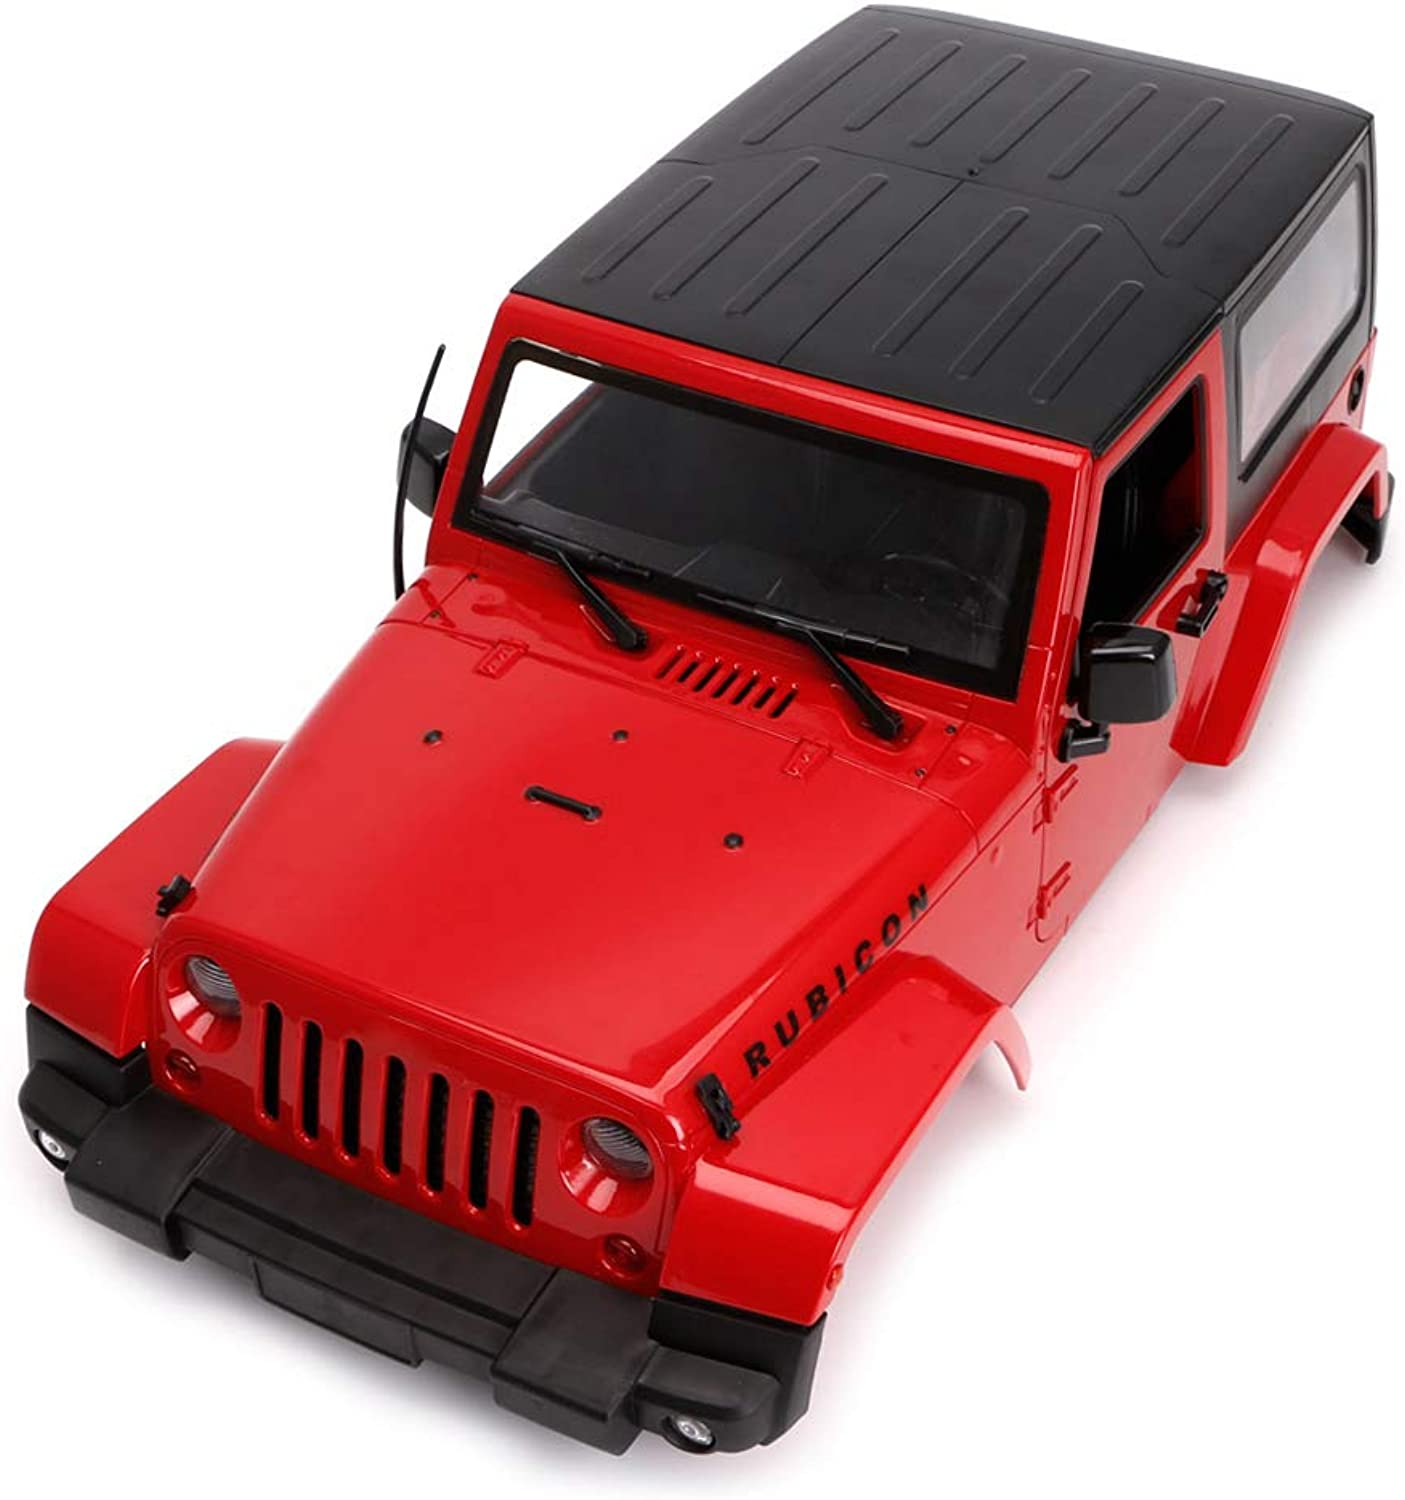 MaskdooHard Plastic Bodies Body Shell Canopy Topless Interiors System Kit Parts for 1 10 RC Crawler Truck SCX10 D90, Remote Control Off-Road Car Pick-up Truck KIT Version DIY Toy Accessories